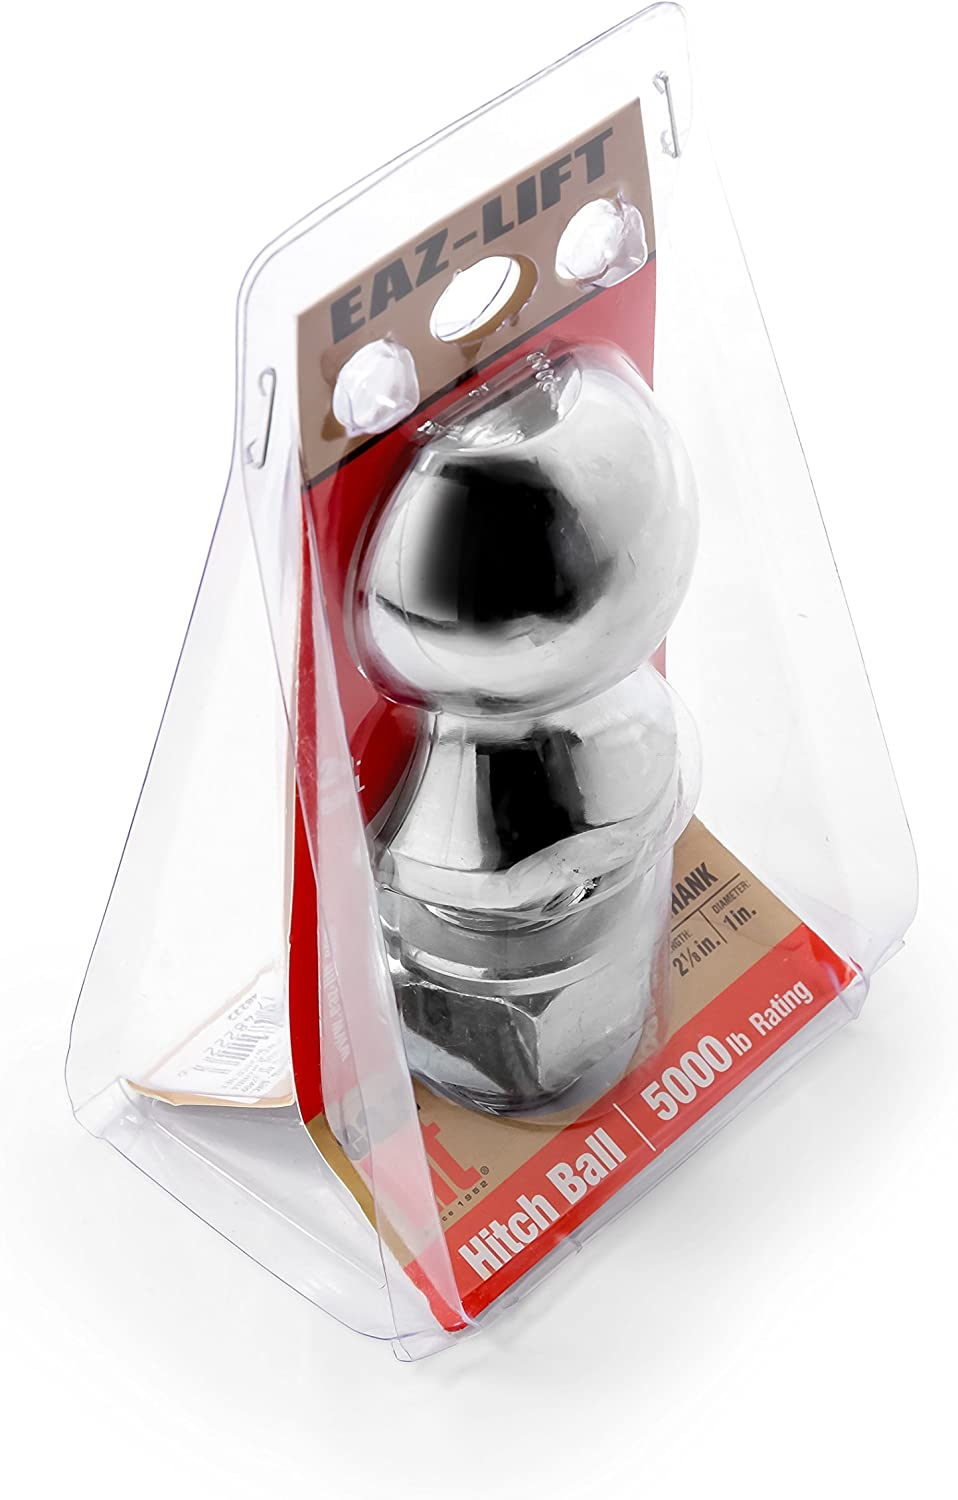 Chrome Plated Heavy Duty Steel Eaz-Lift 48222 2 Hitch Ball with 1 Shank 5,000 lb Rating